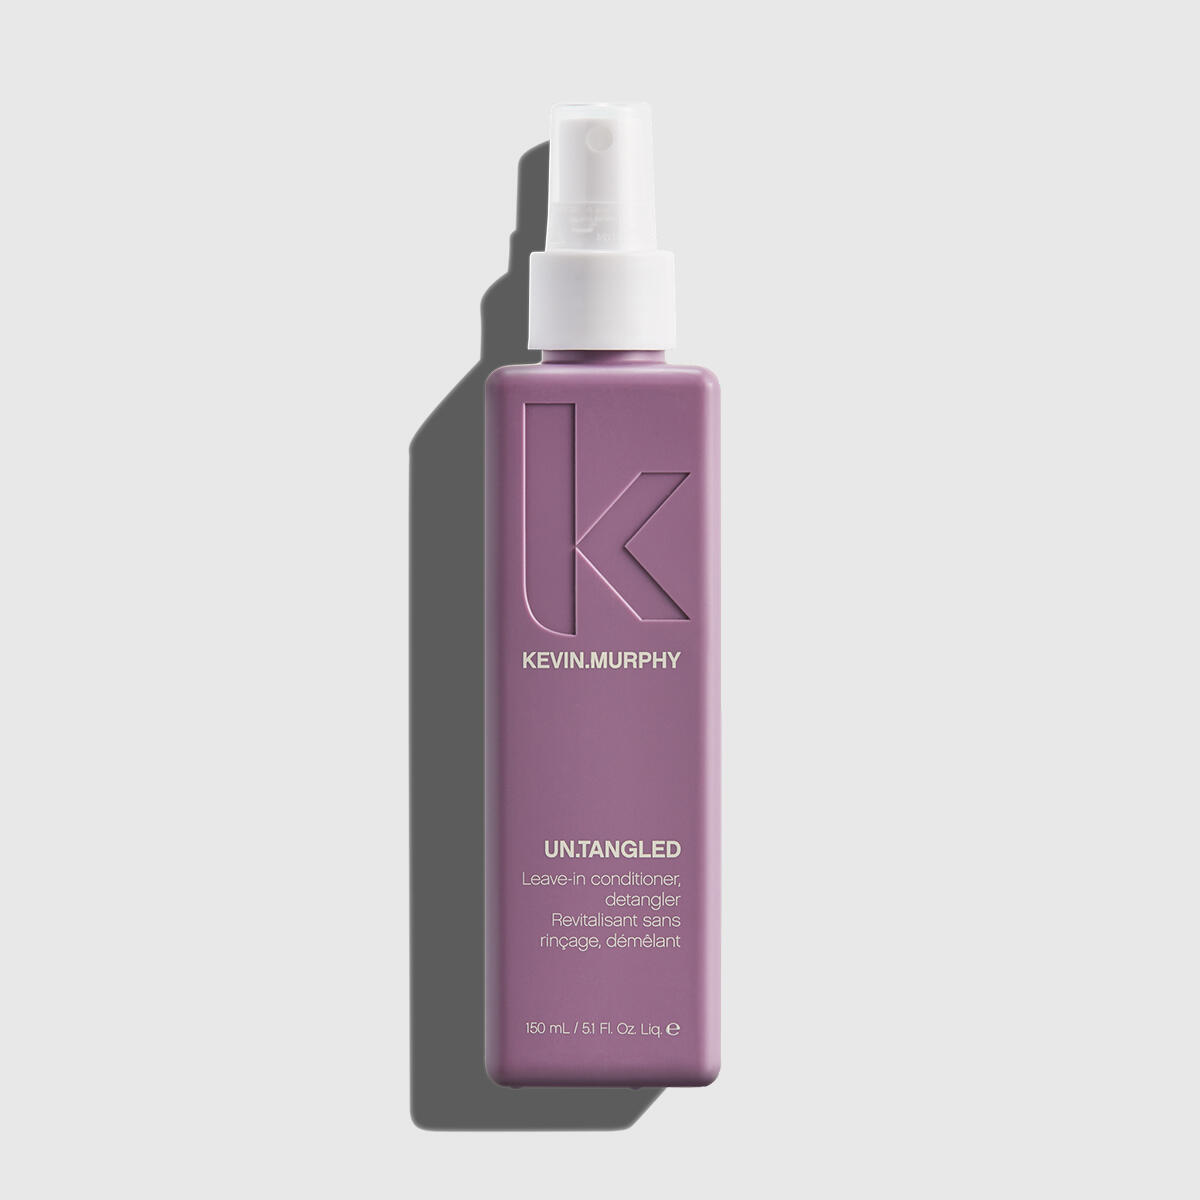 Kevin Murphy Un Tangled null